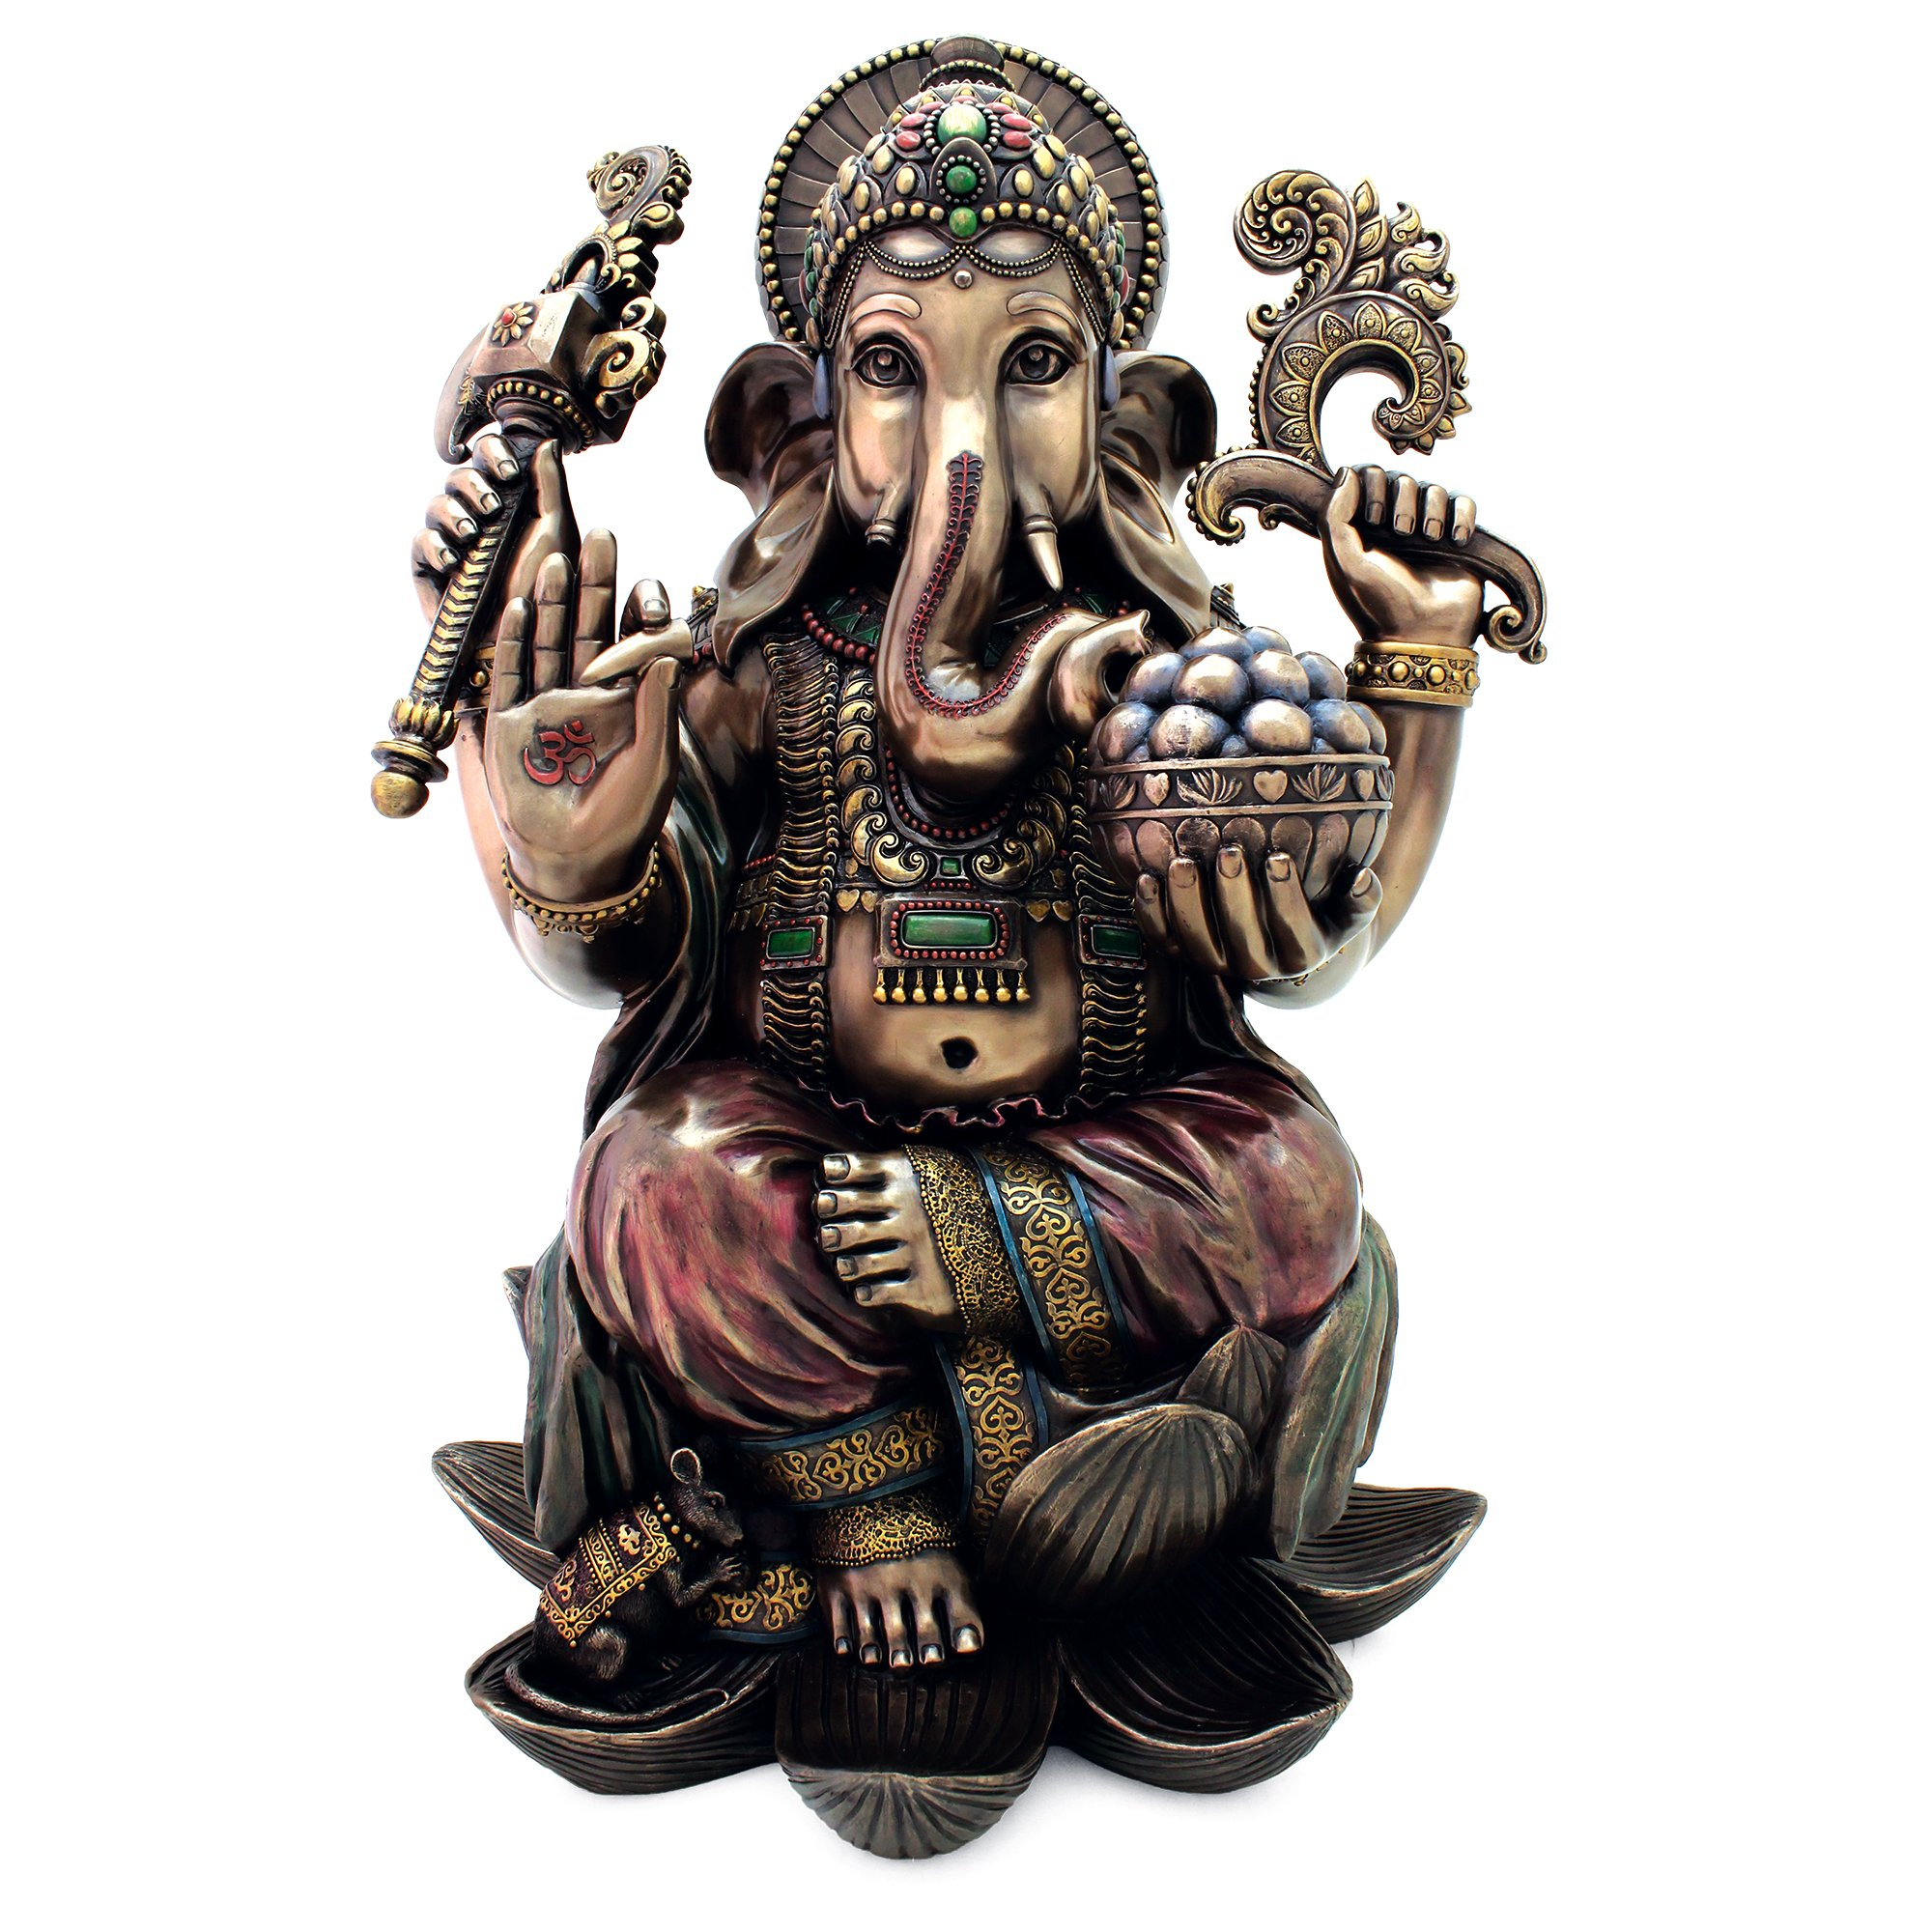 Top Collection 25'' Large Ganesha Statue in Real Bronze Powder Cast - Hindu Sri Ganesh Elephant Lord of Success Museum Sculpture